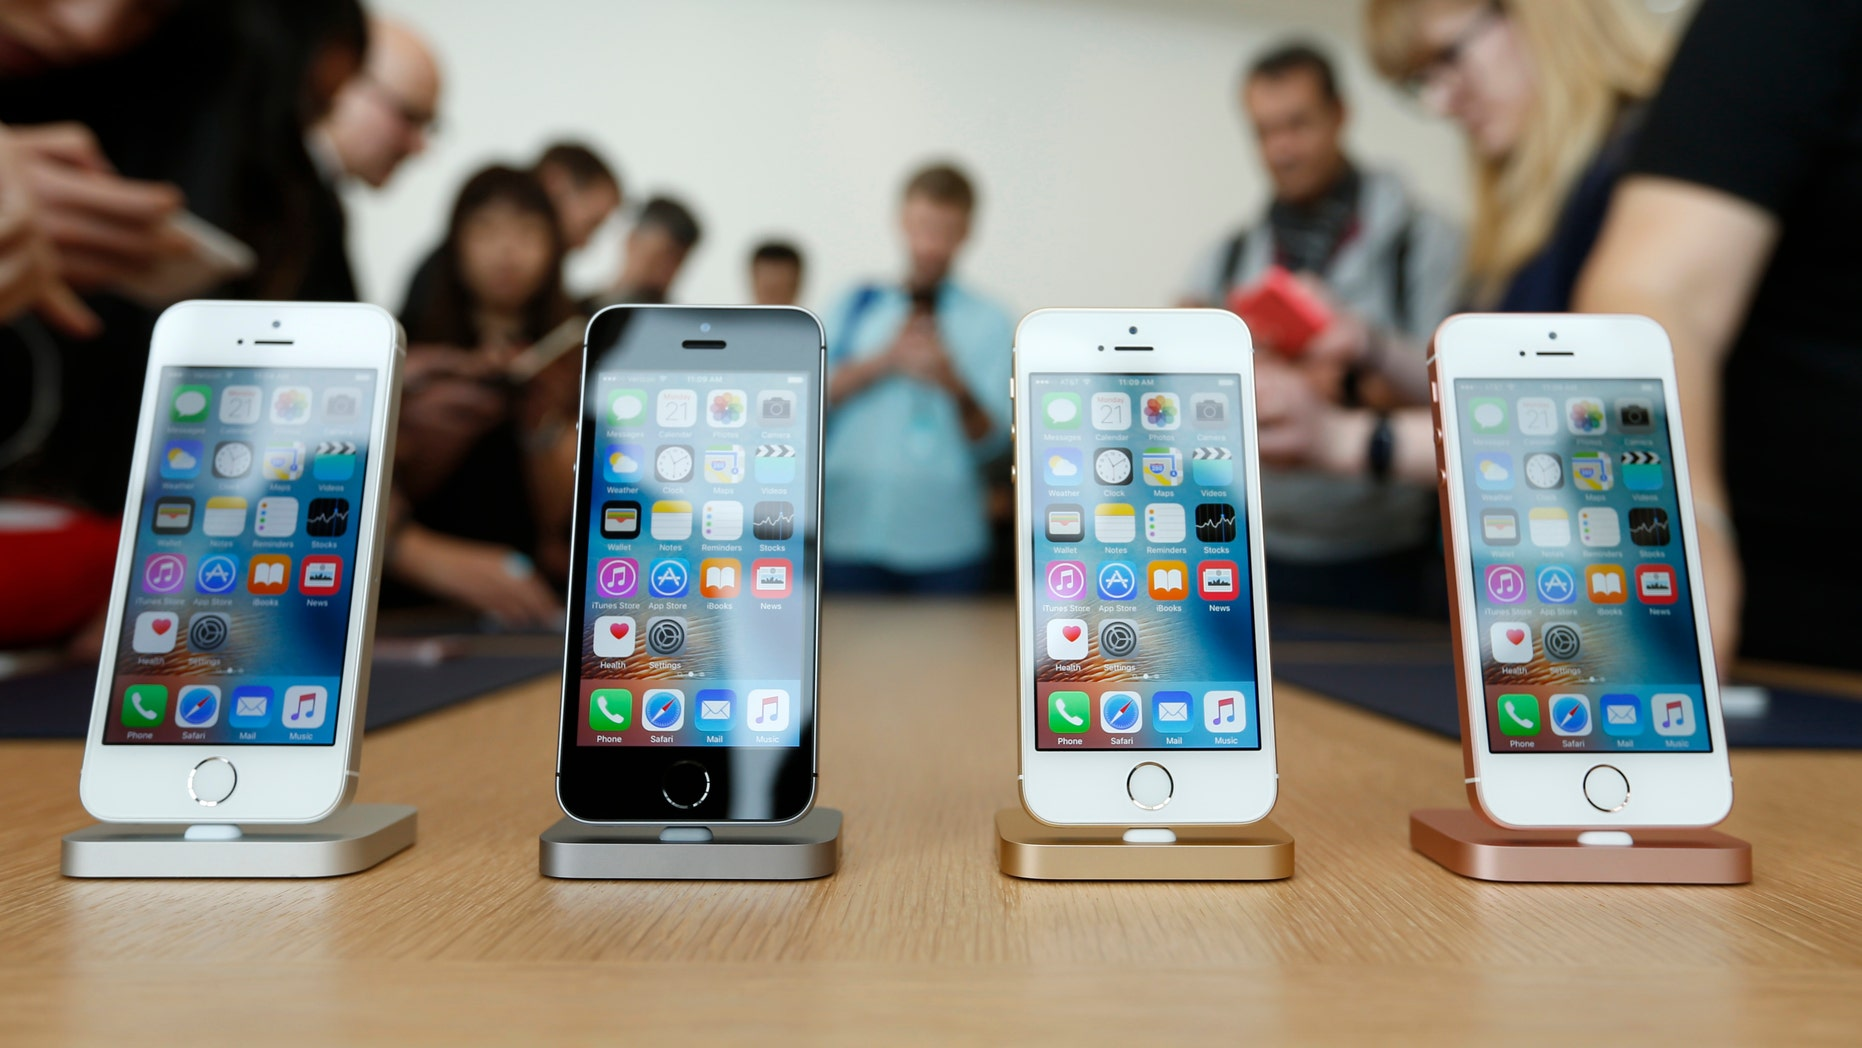 The new iPhone SE is seen on display during an event at the Apple headquarters in Cupertino, California March 21, 2016. (REUTERS/Stephen Lam)